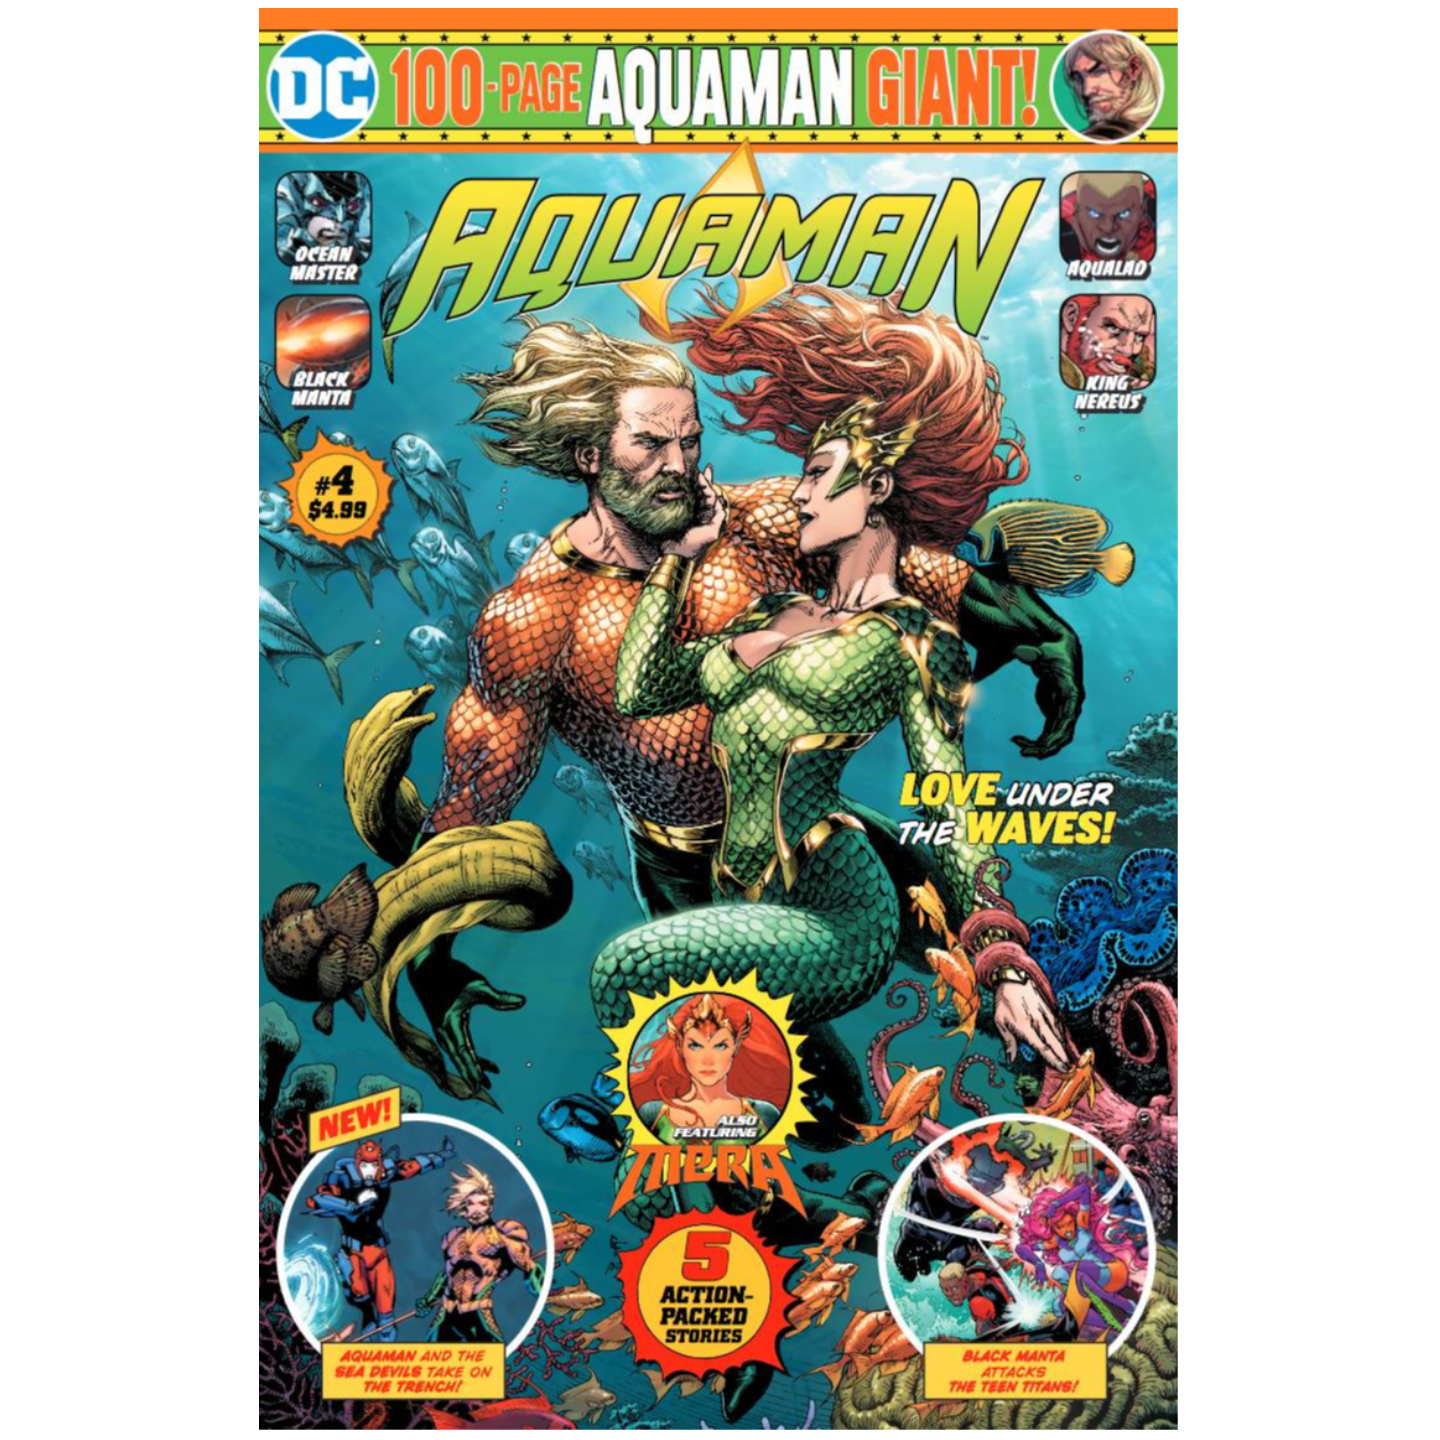 AQUAMAN GIANT #4